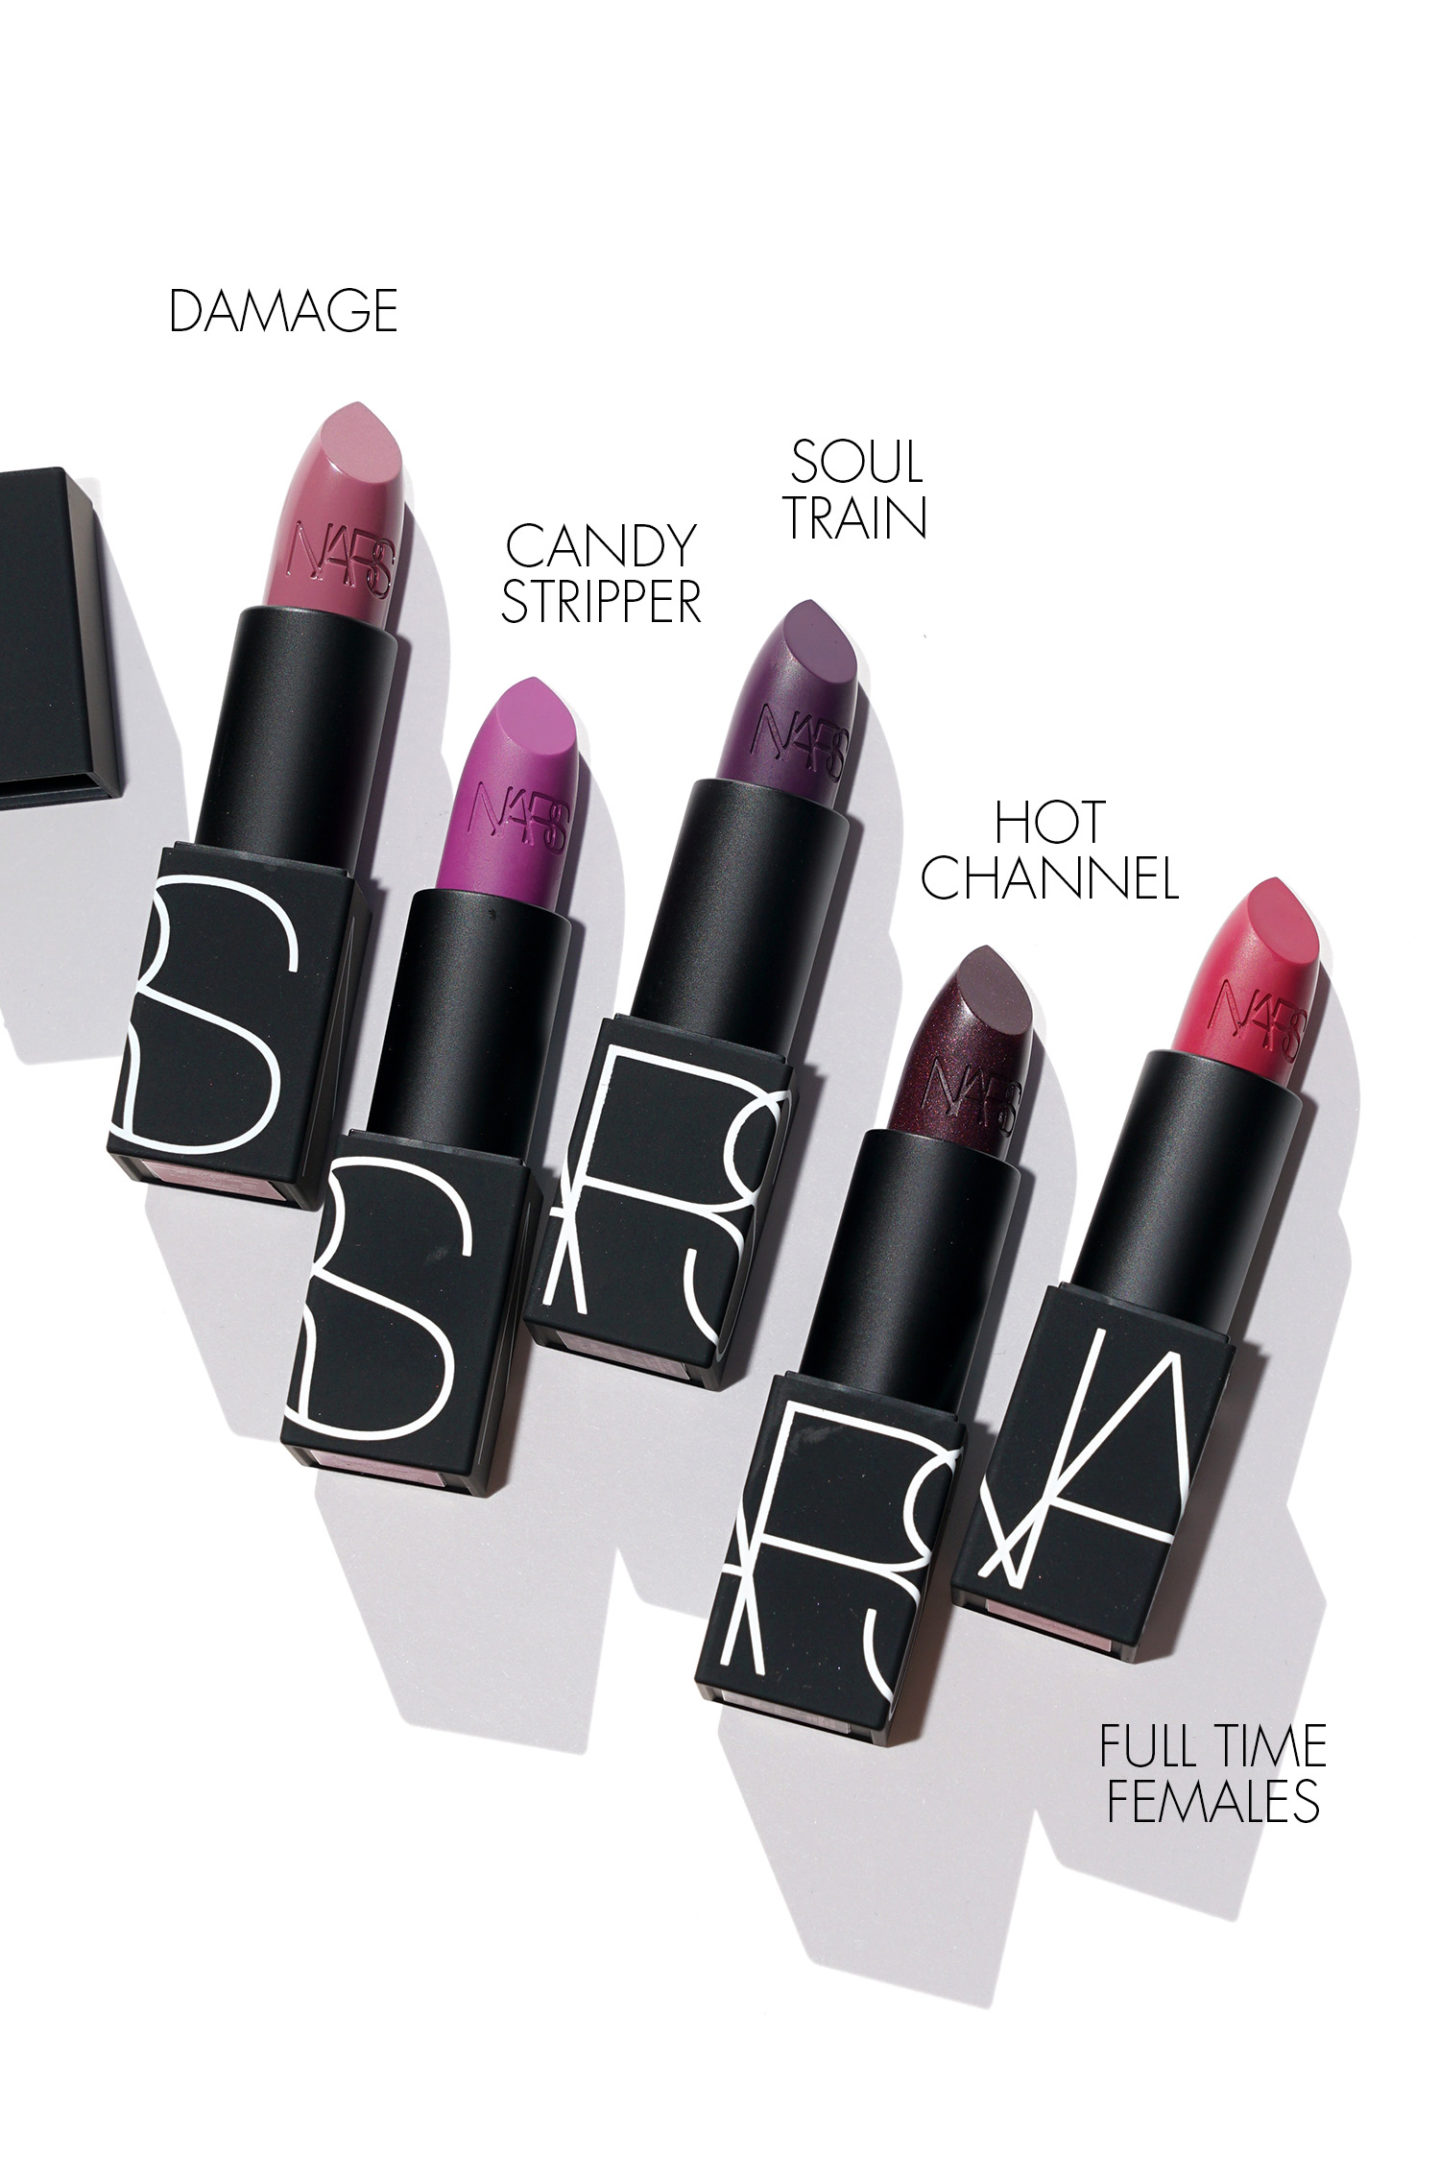 NARS Lipstick Damage, Candy Stripper, Soul Train, Hot Channel, Femelles à plein temps